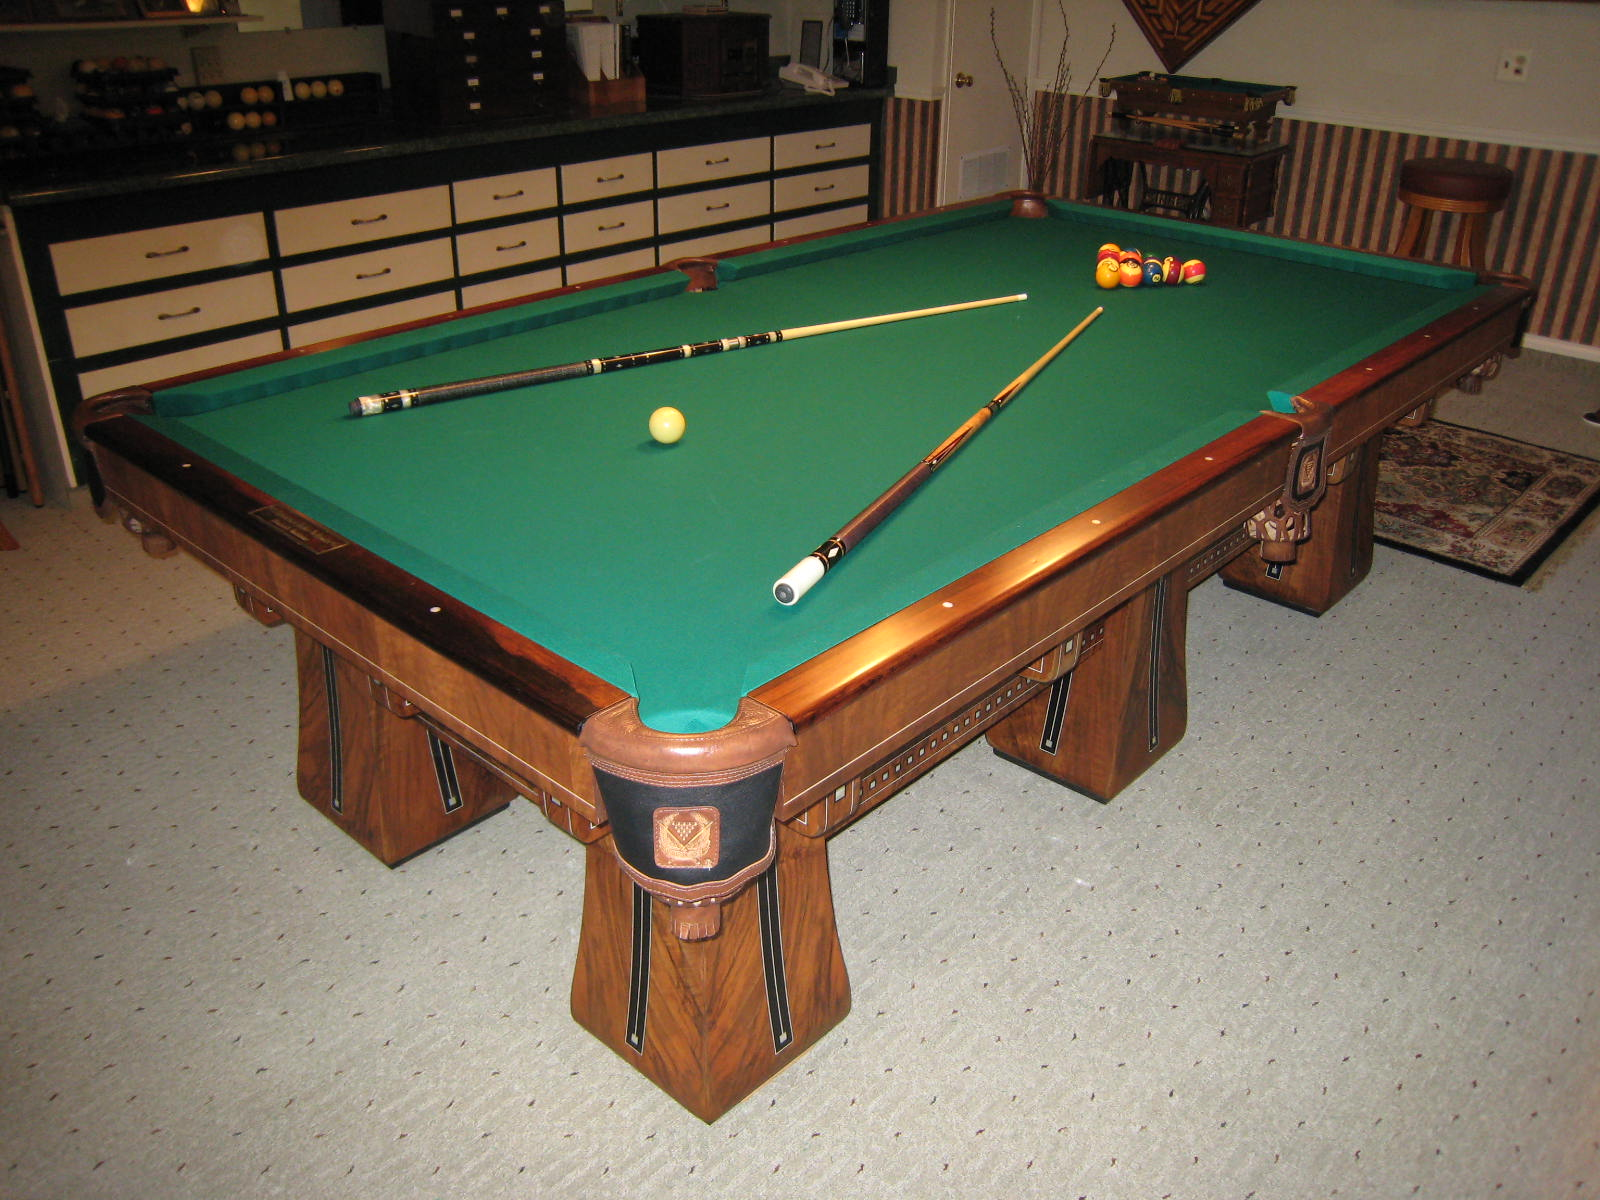 Kling - Circular pool table